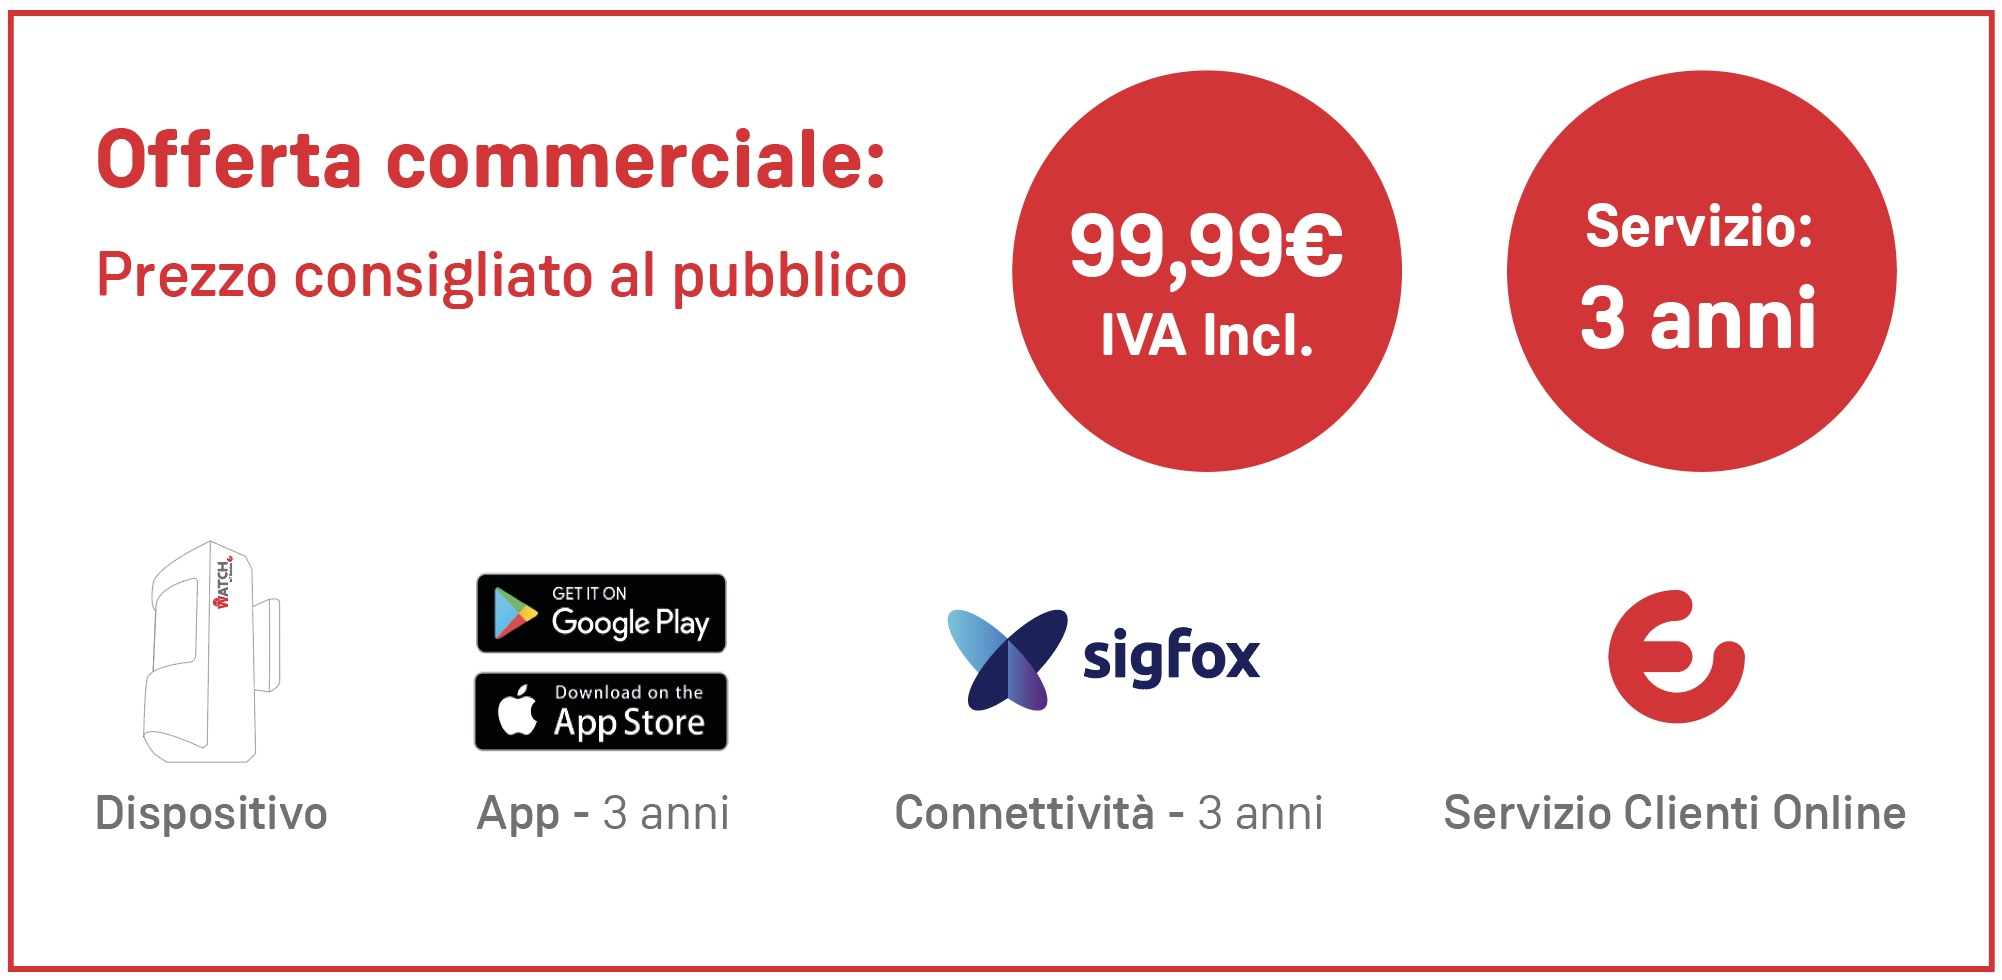 watch offerta commerciale